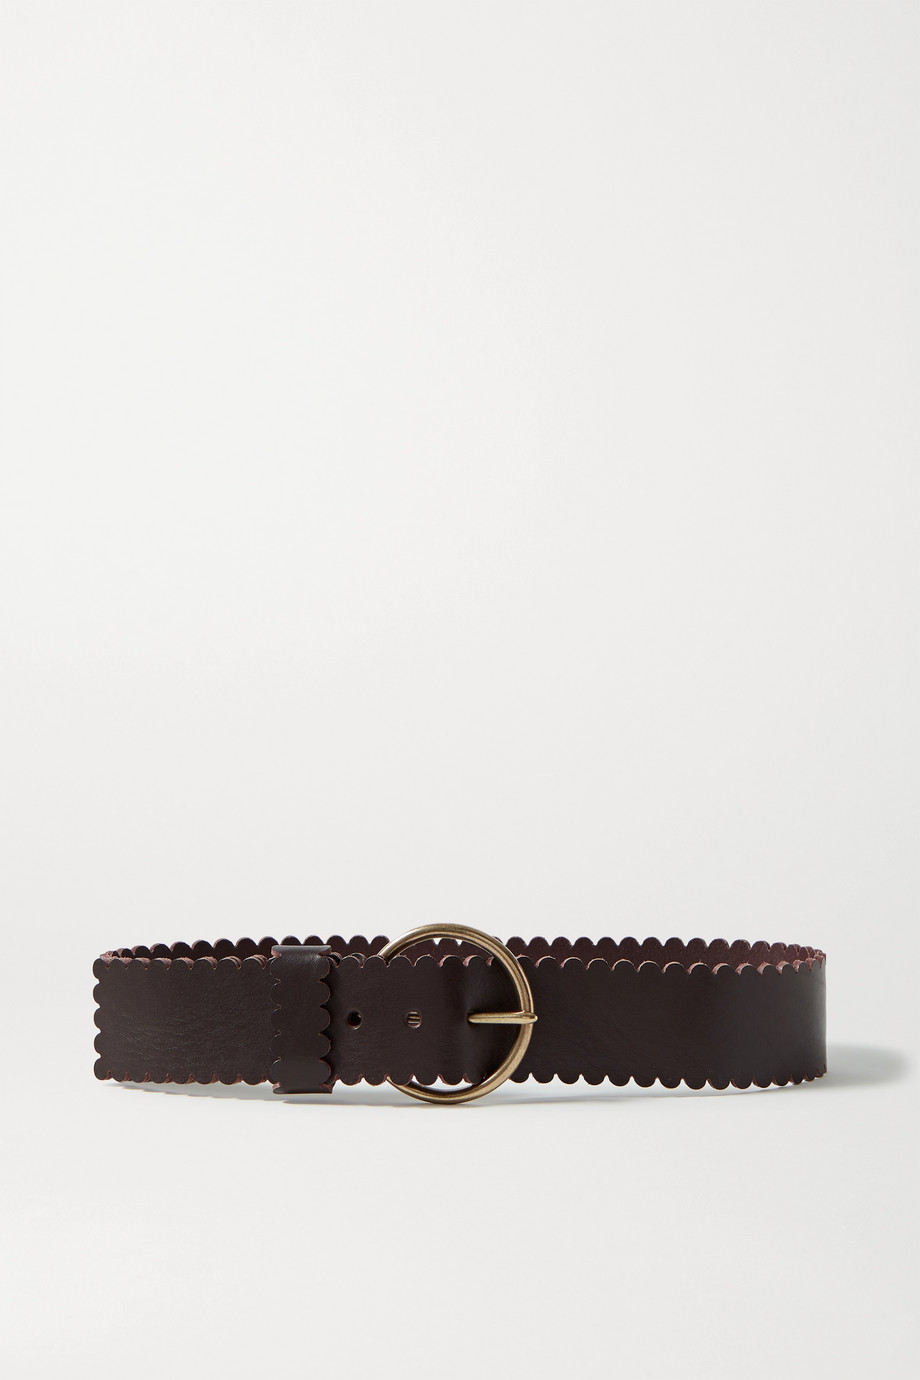 Black & Brown + NET SUSTAIN Sienna scalloped leather waist belt